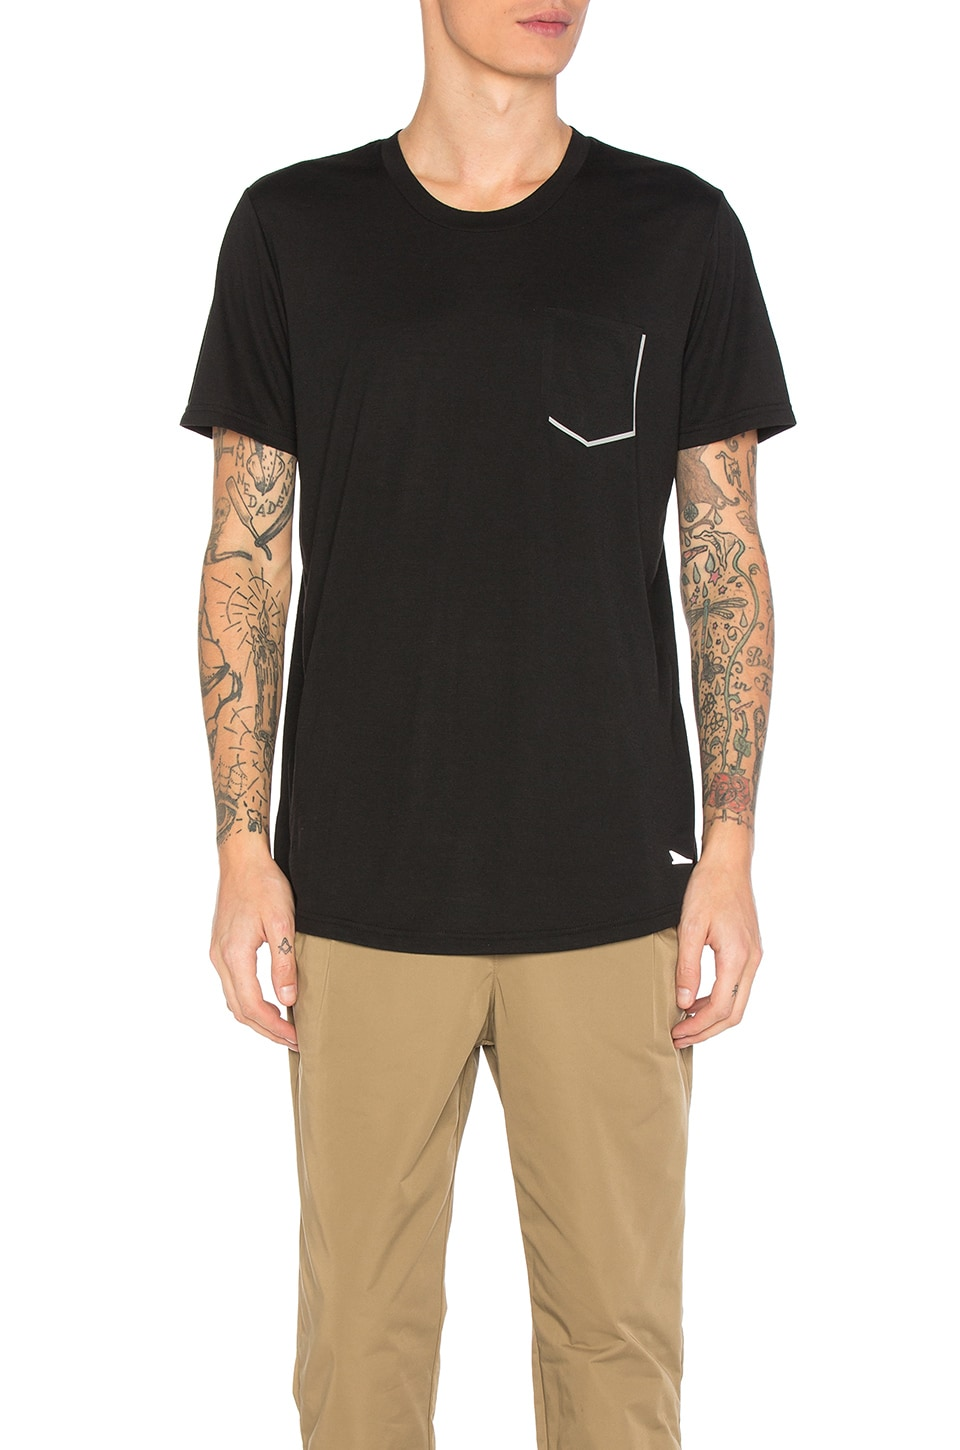 Tech Reflective Chest Pocket Tee by Brandblack